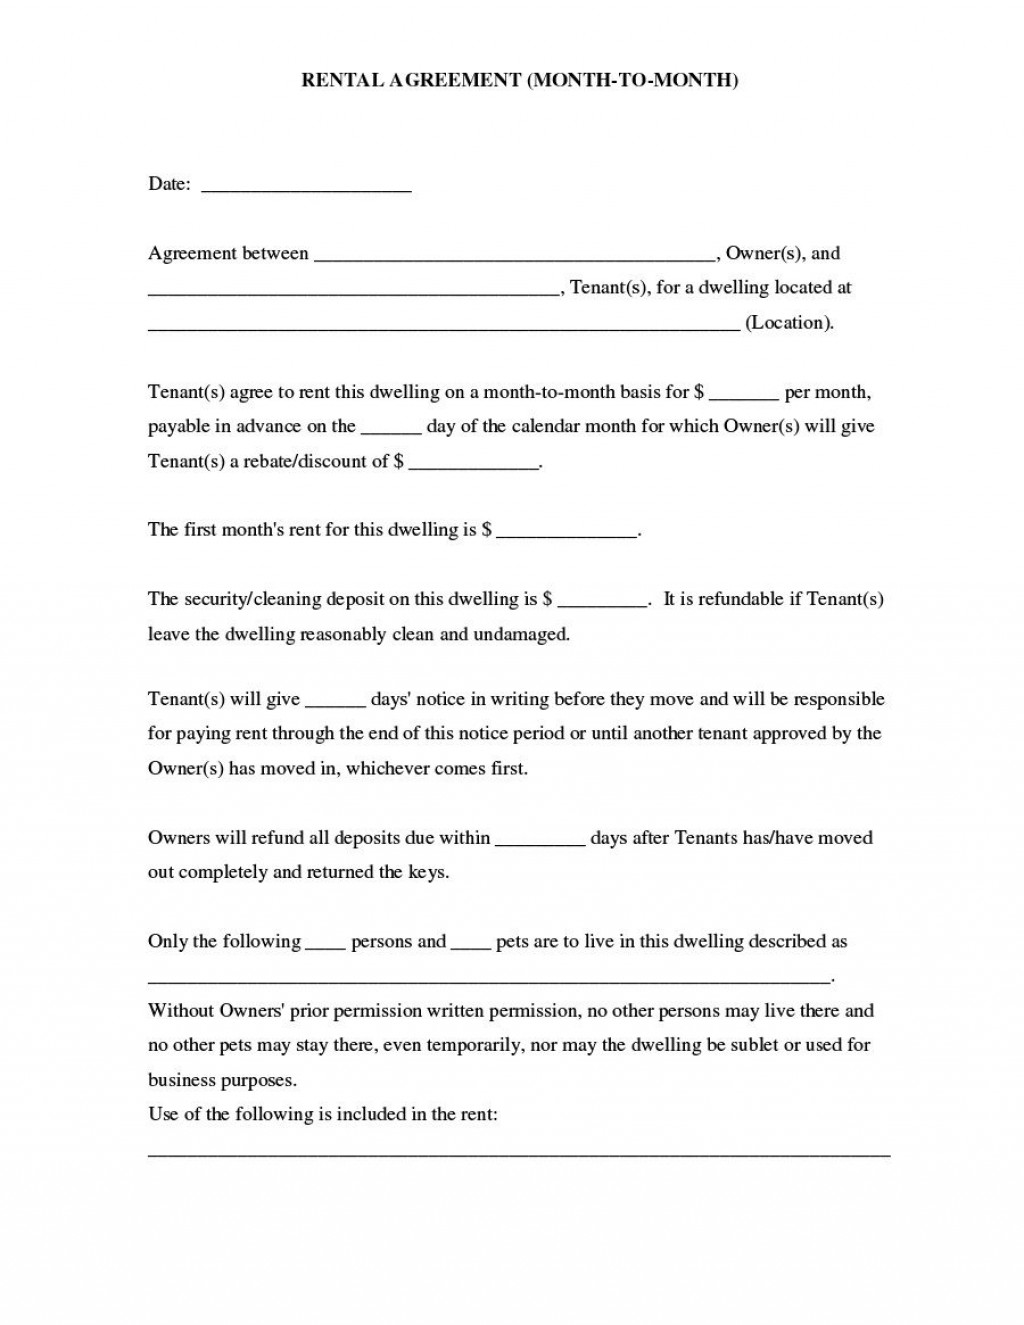 004 Unusual Room Rental Agreement Simple Form Example  Template Word Doc Rent Format In Free UkLarge